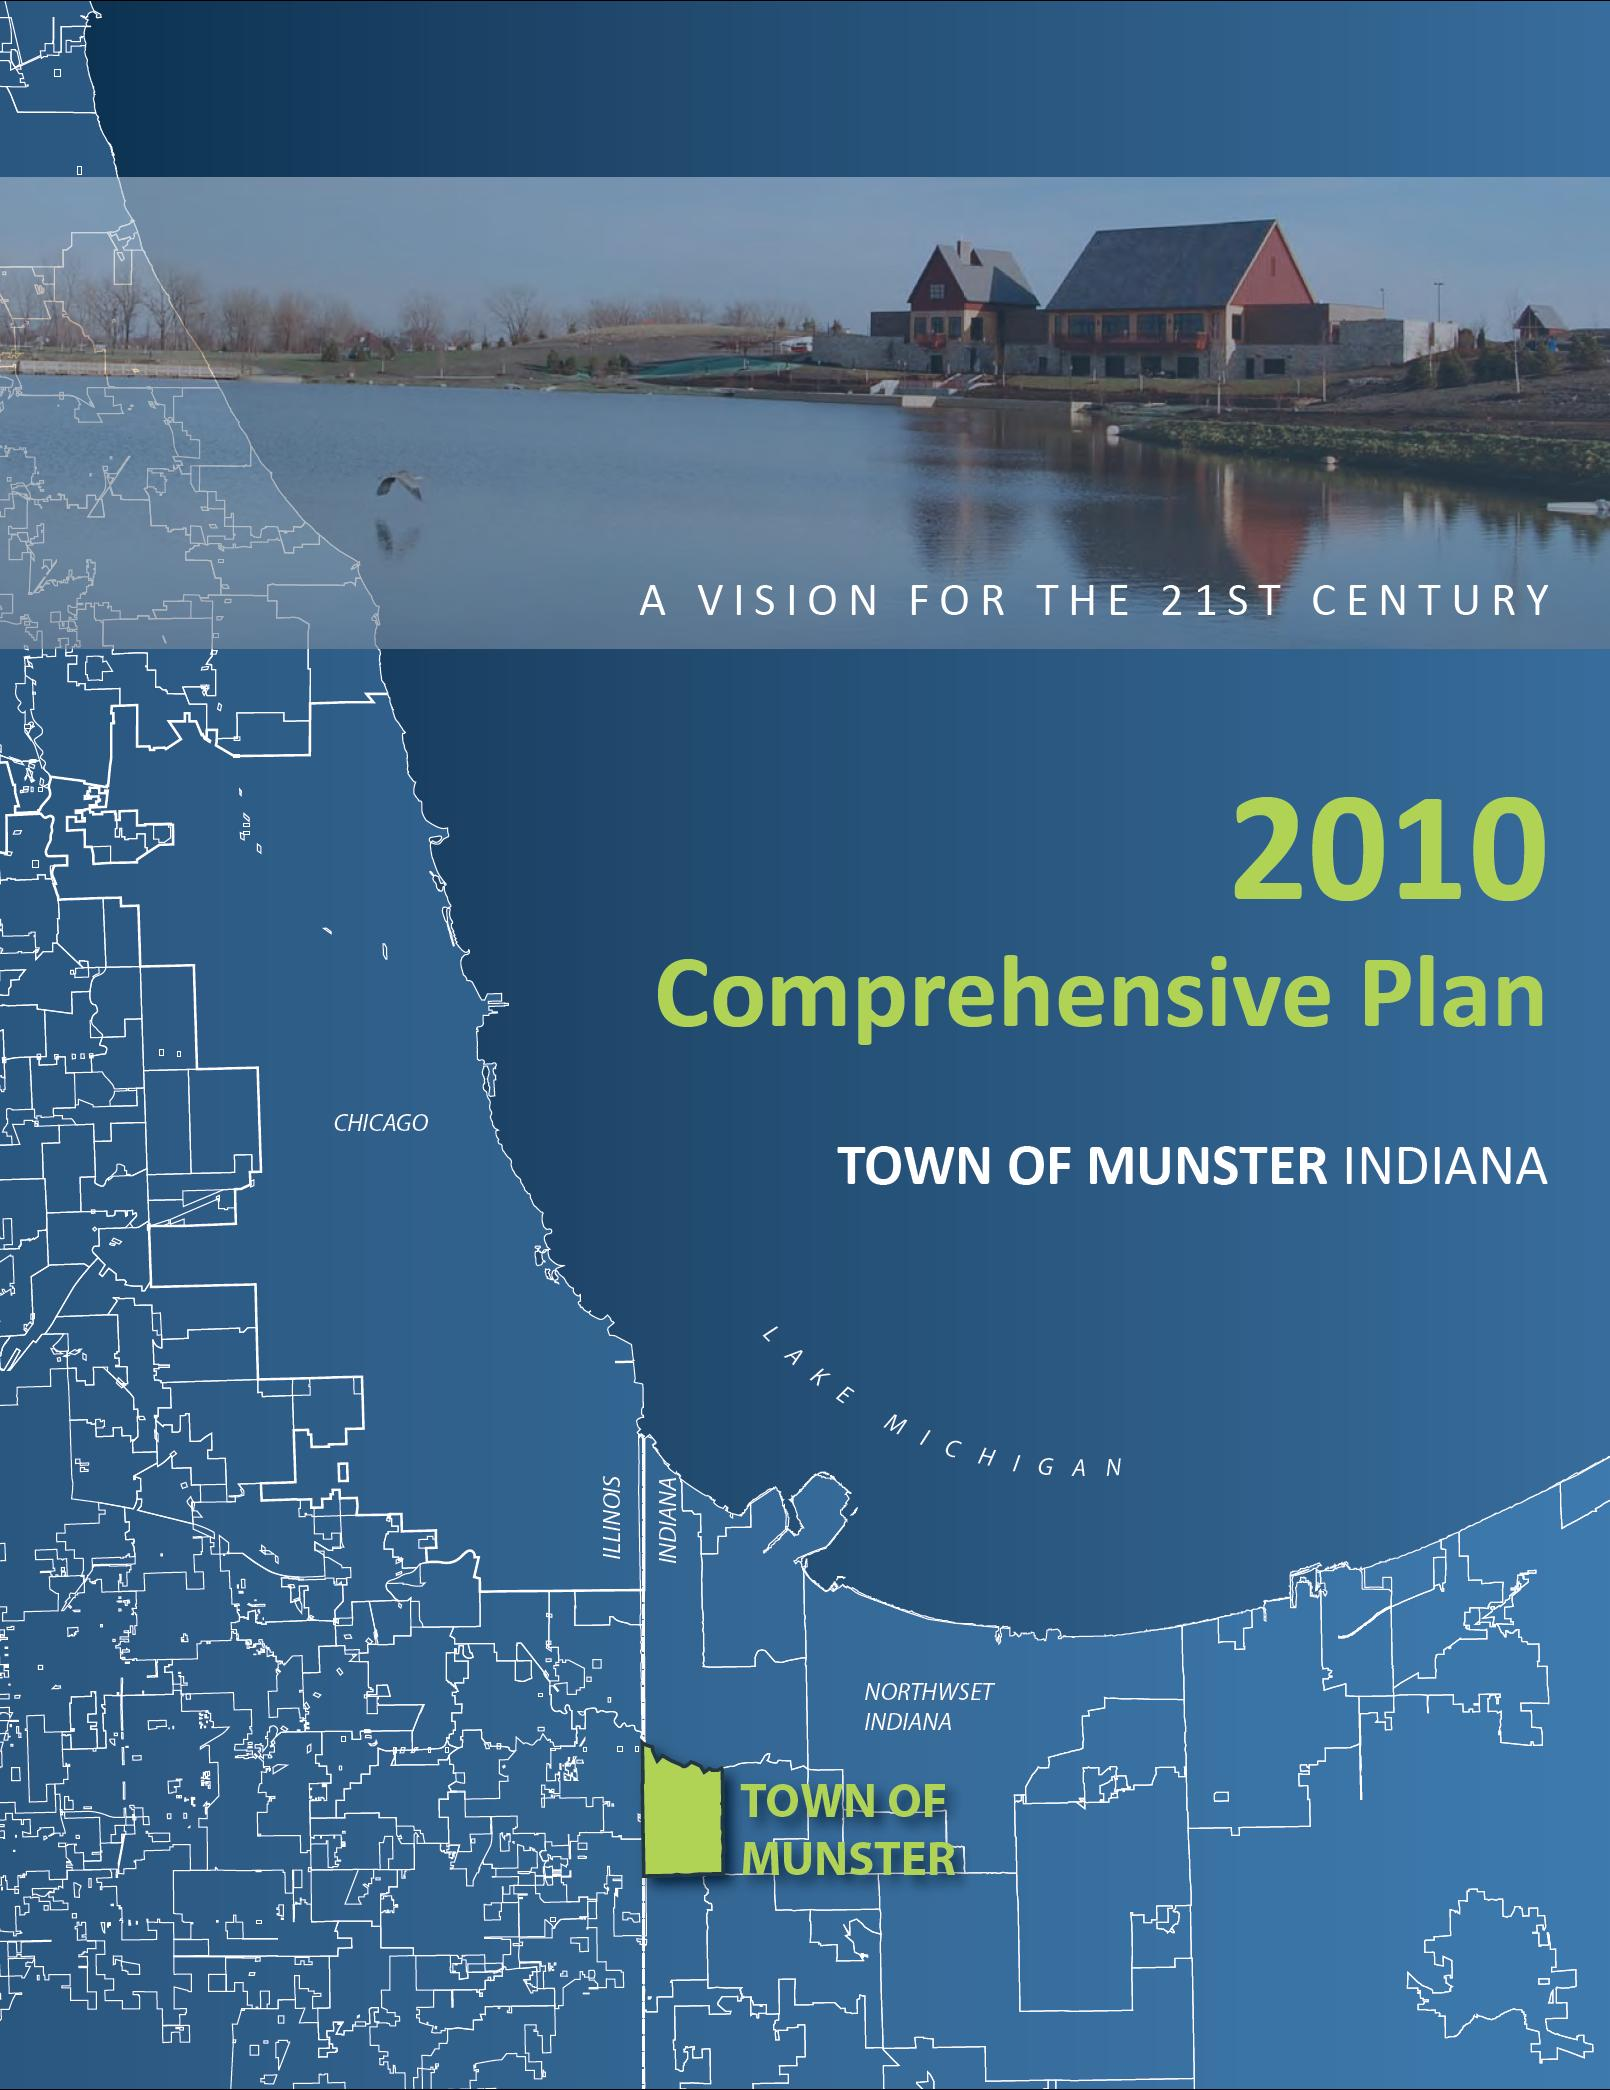 2010 Comprehensive Plan